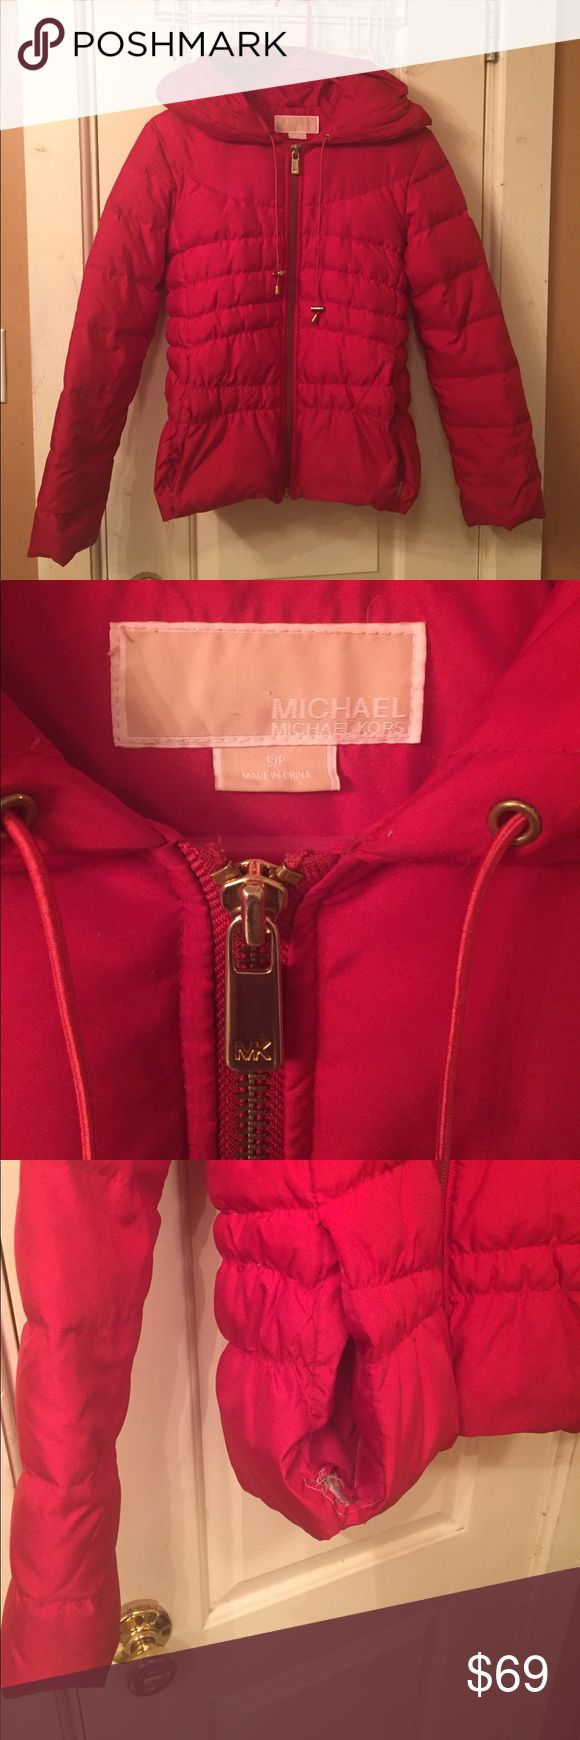 Red MICHAEL Michael Kors Coat Size S Beautiful all Red MICHAEL  Michael Kors Down Feather Puffer Coat. Feel free to make an offer. Size Small MICHAEL Michael Kors Jackets & Coats Puffers